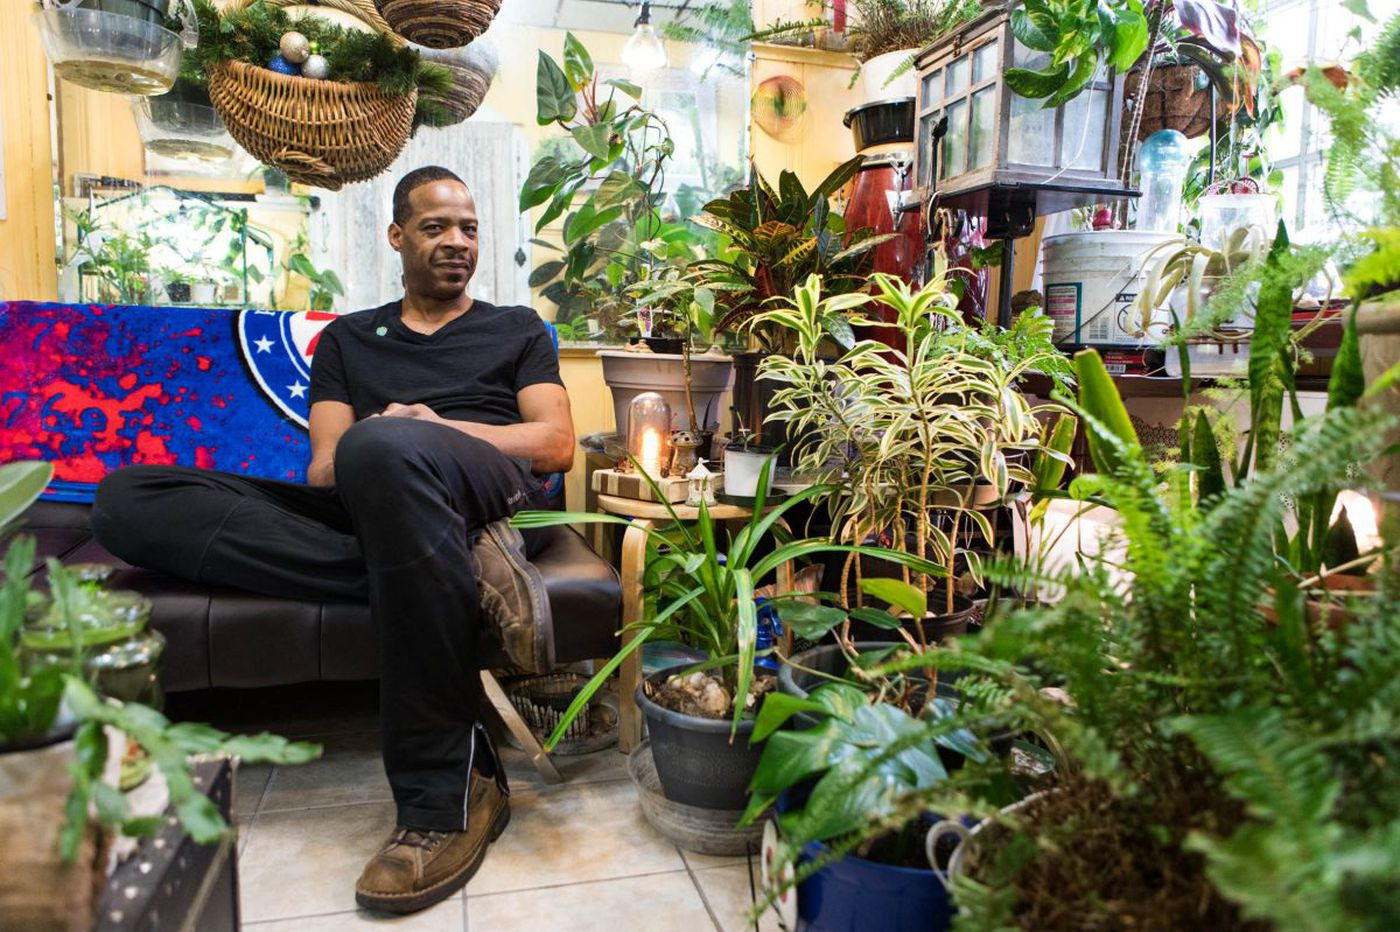 'Philly Plant Guy' has 200 plants in his South Philly rowhome | We the People